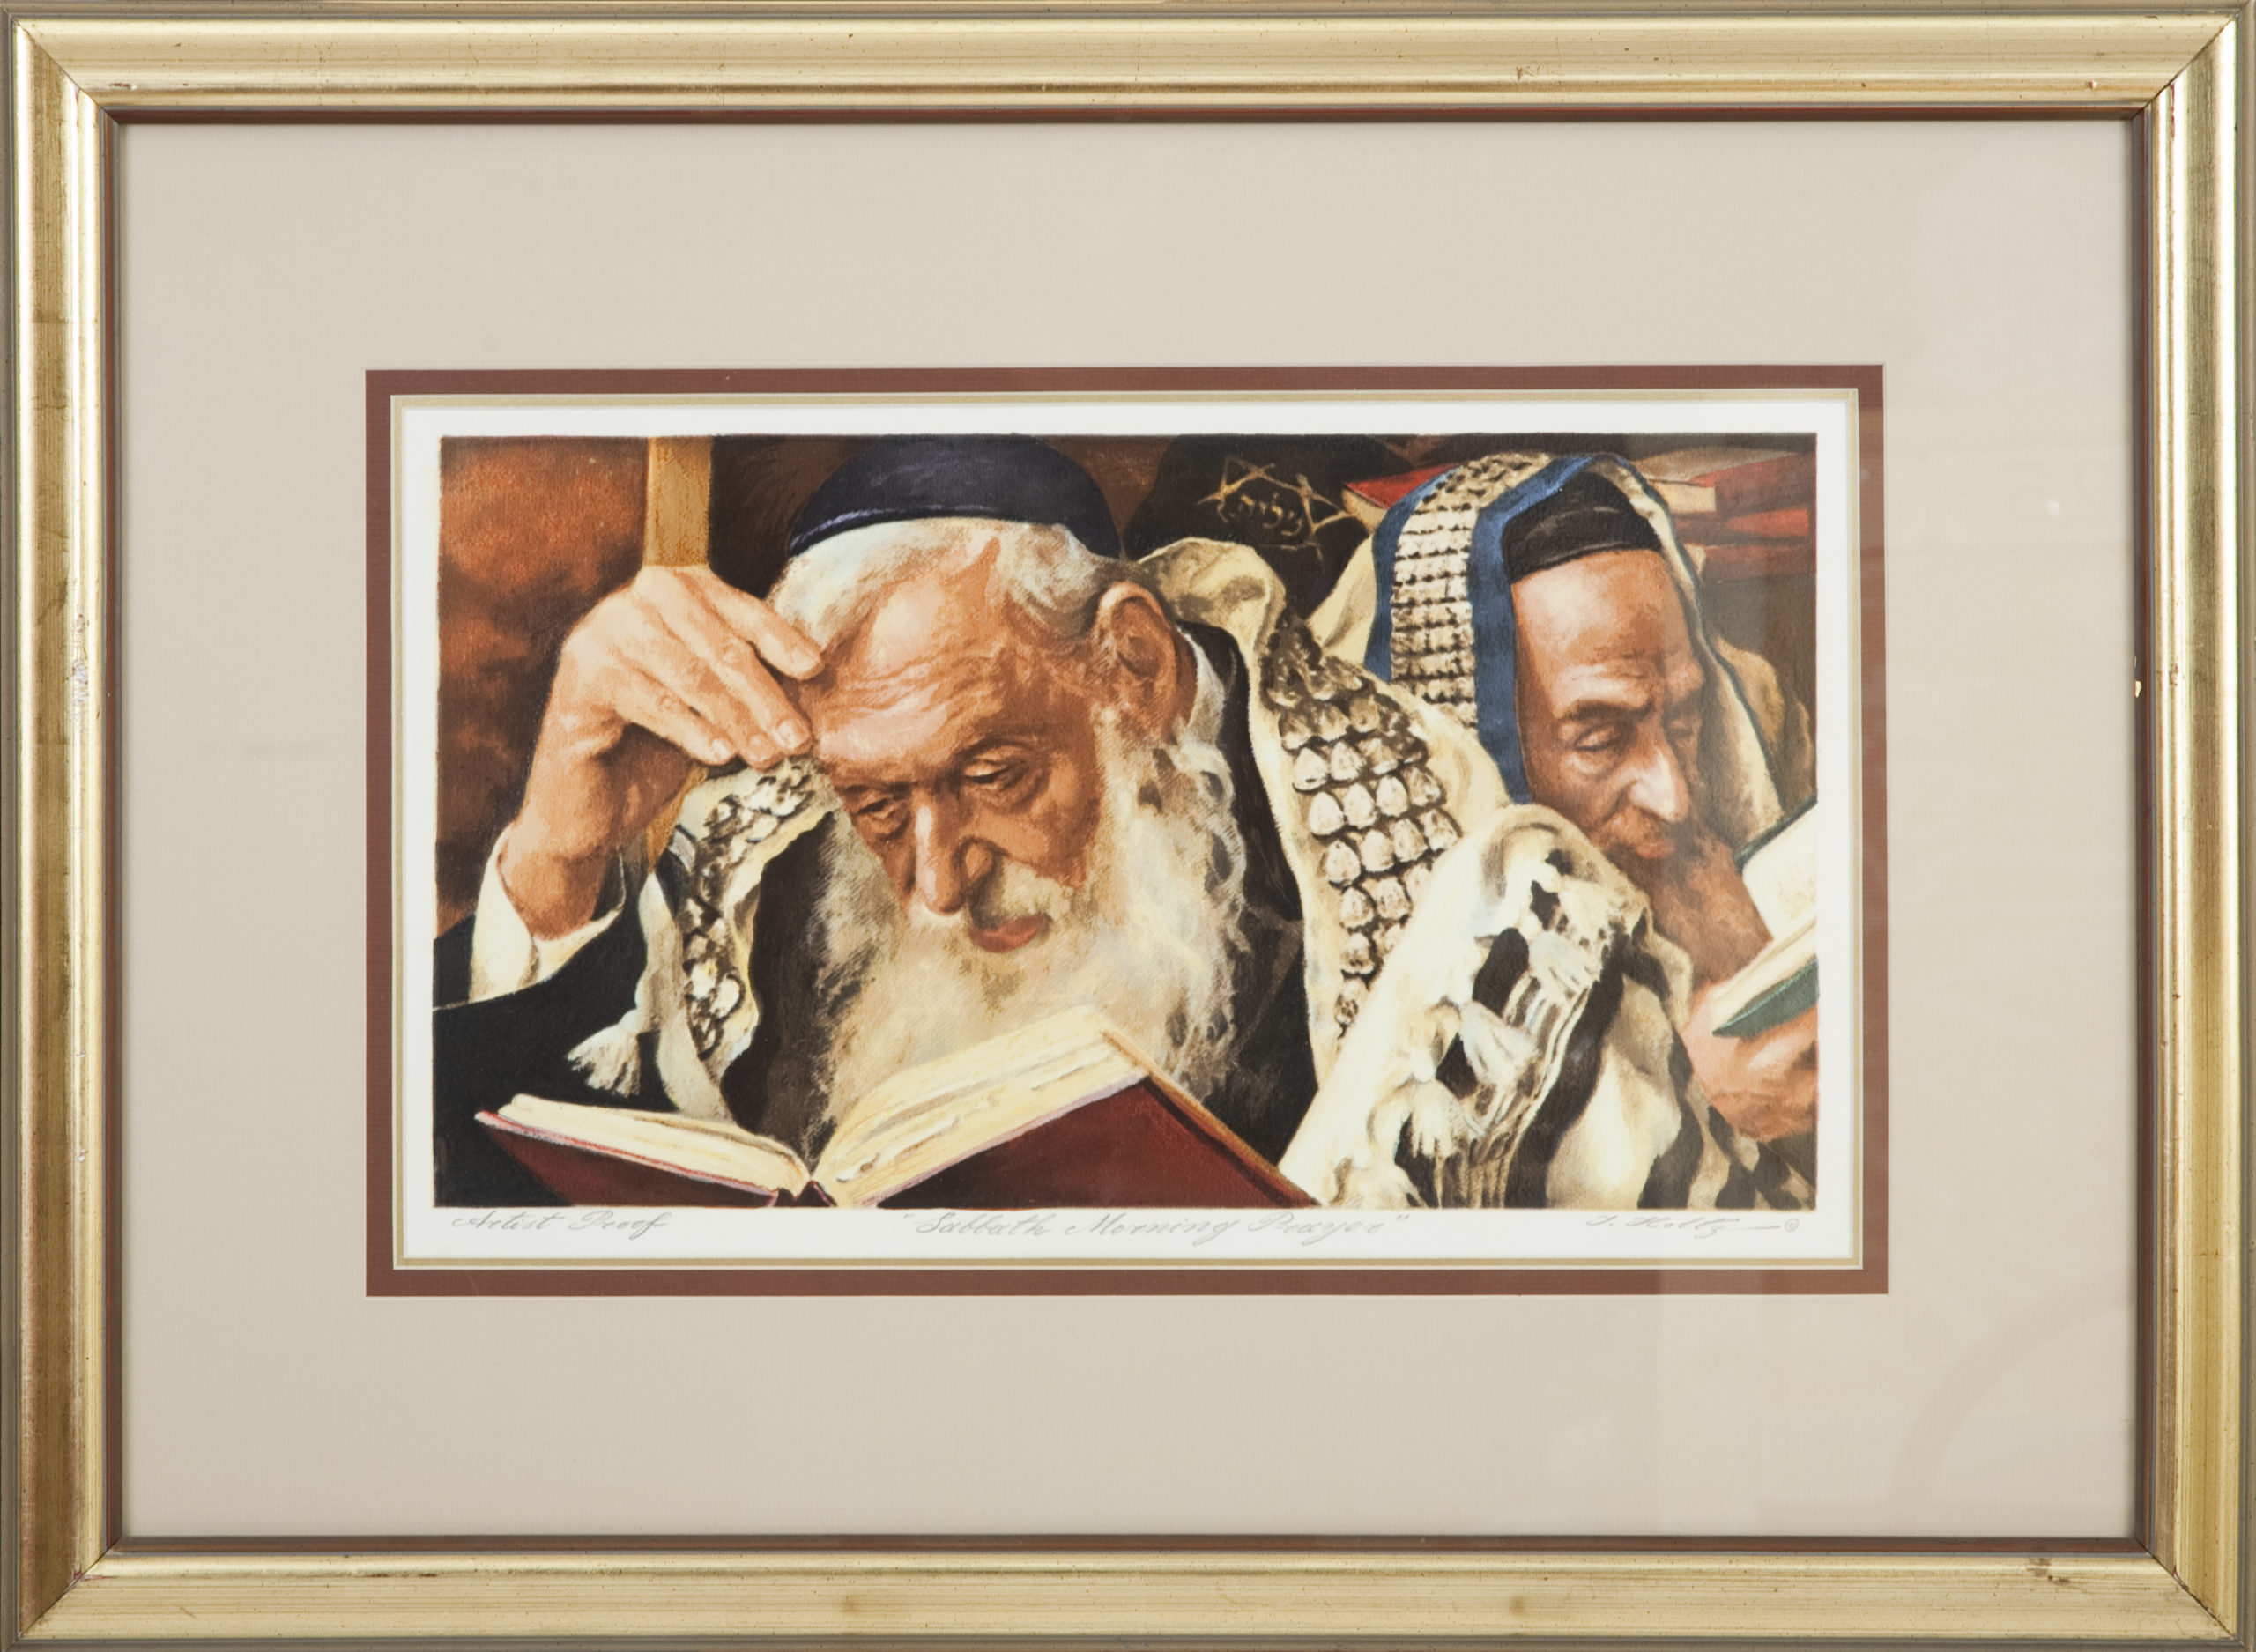 L06F Shabbat Morning Service - Color - Serigraph - 23.5 x 15.5 - Framed